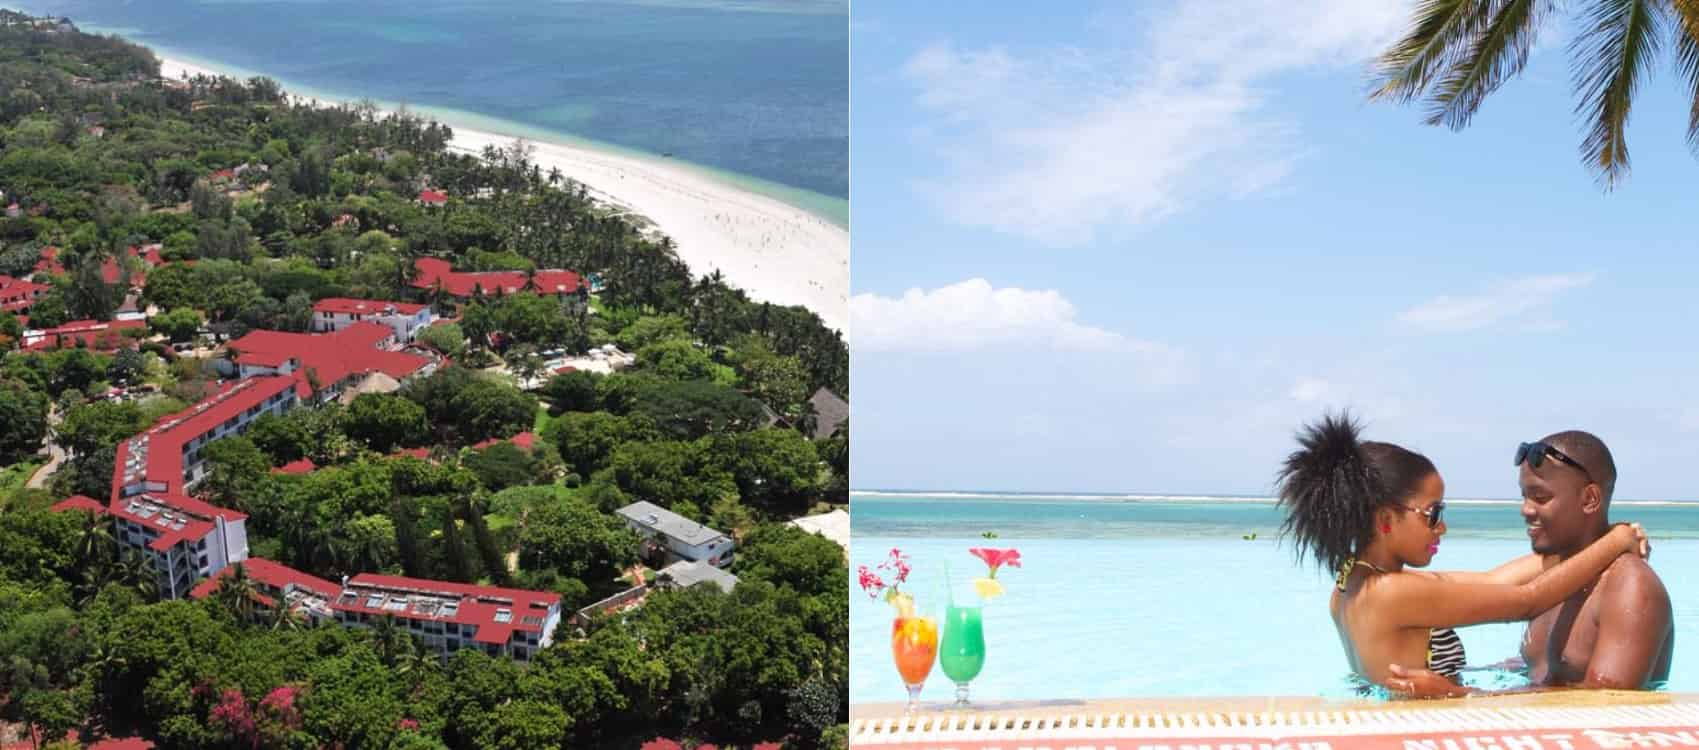 List of affordable honeymoon destinations in mombasa kenya for Beach honeymoon destinations in the us